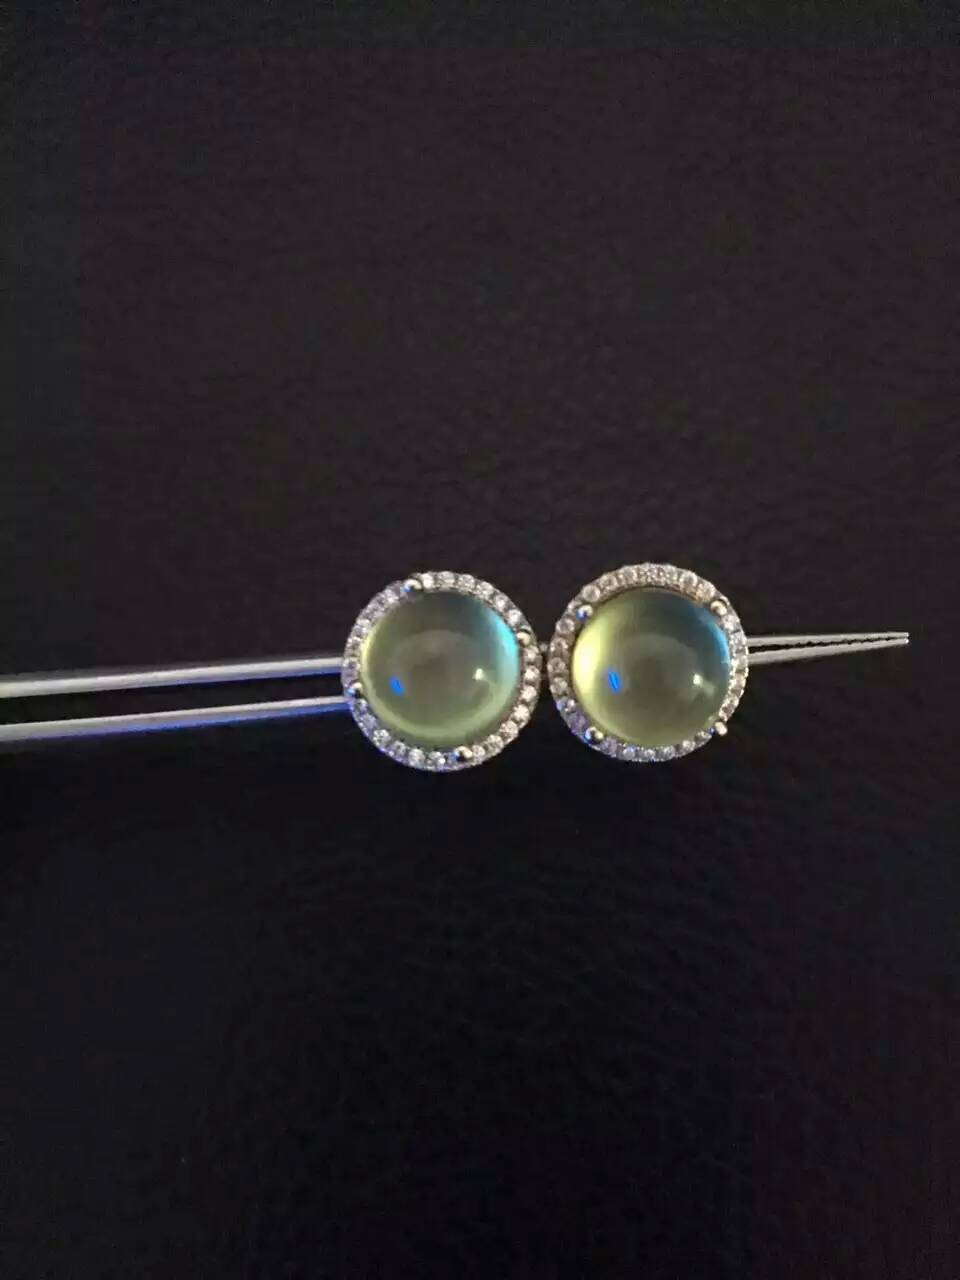 natural prehnite stone stud earrings S925 silver natural gemstone earrings round for girl women s party